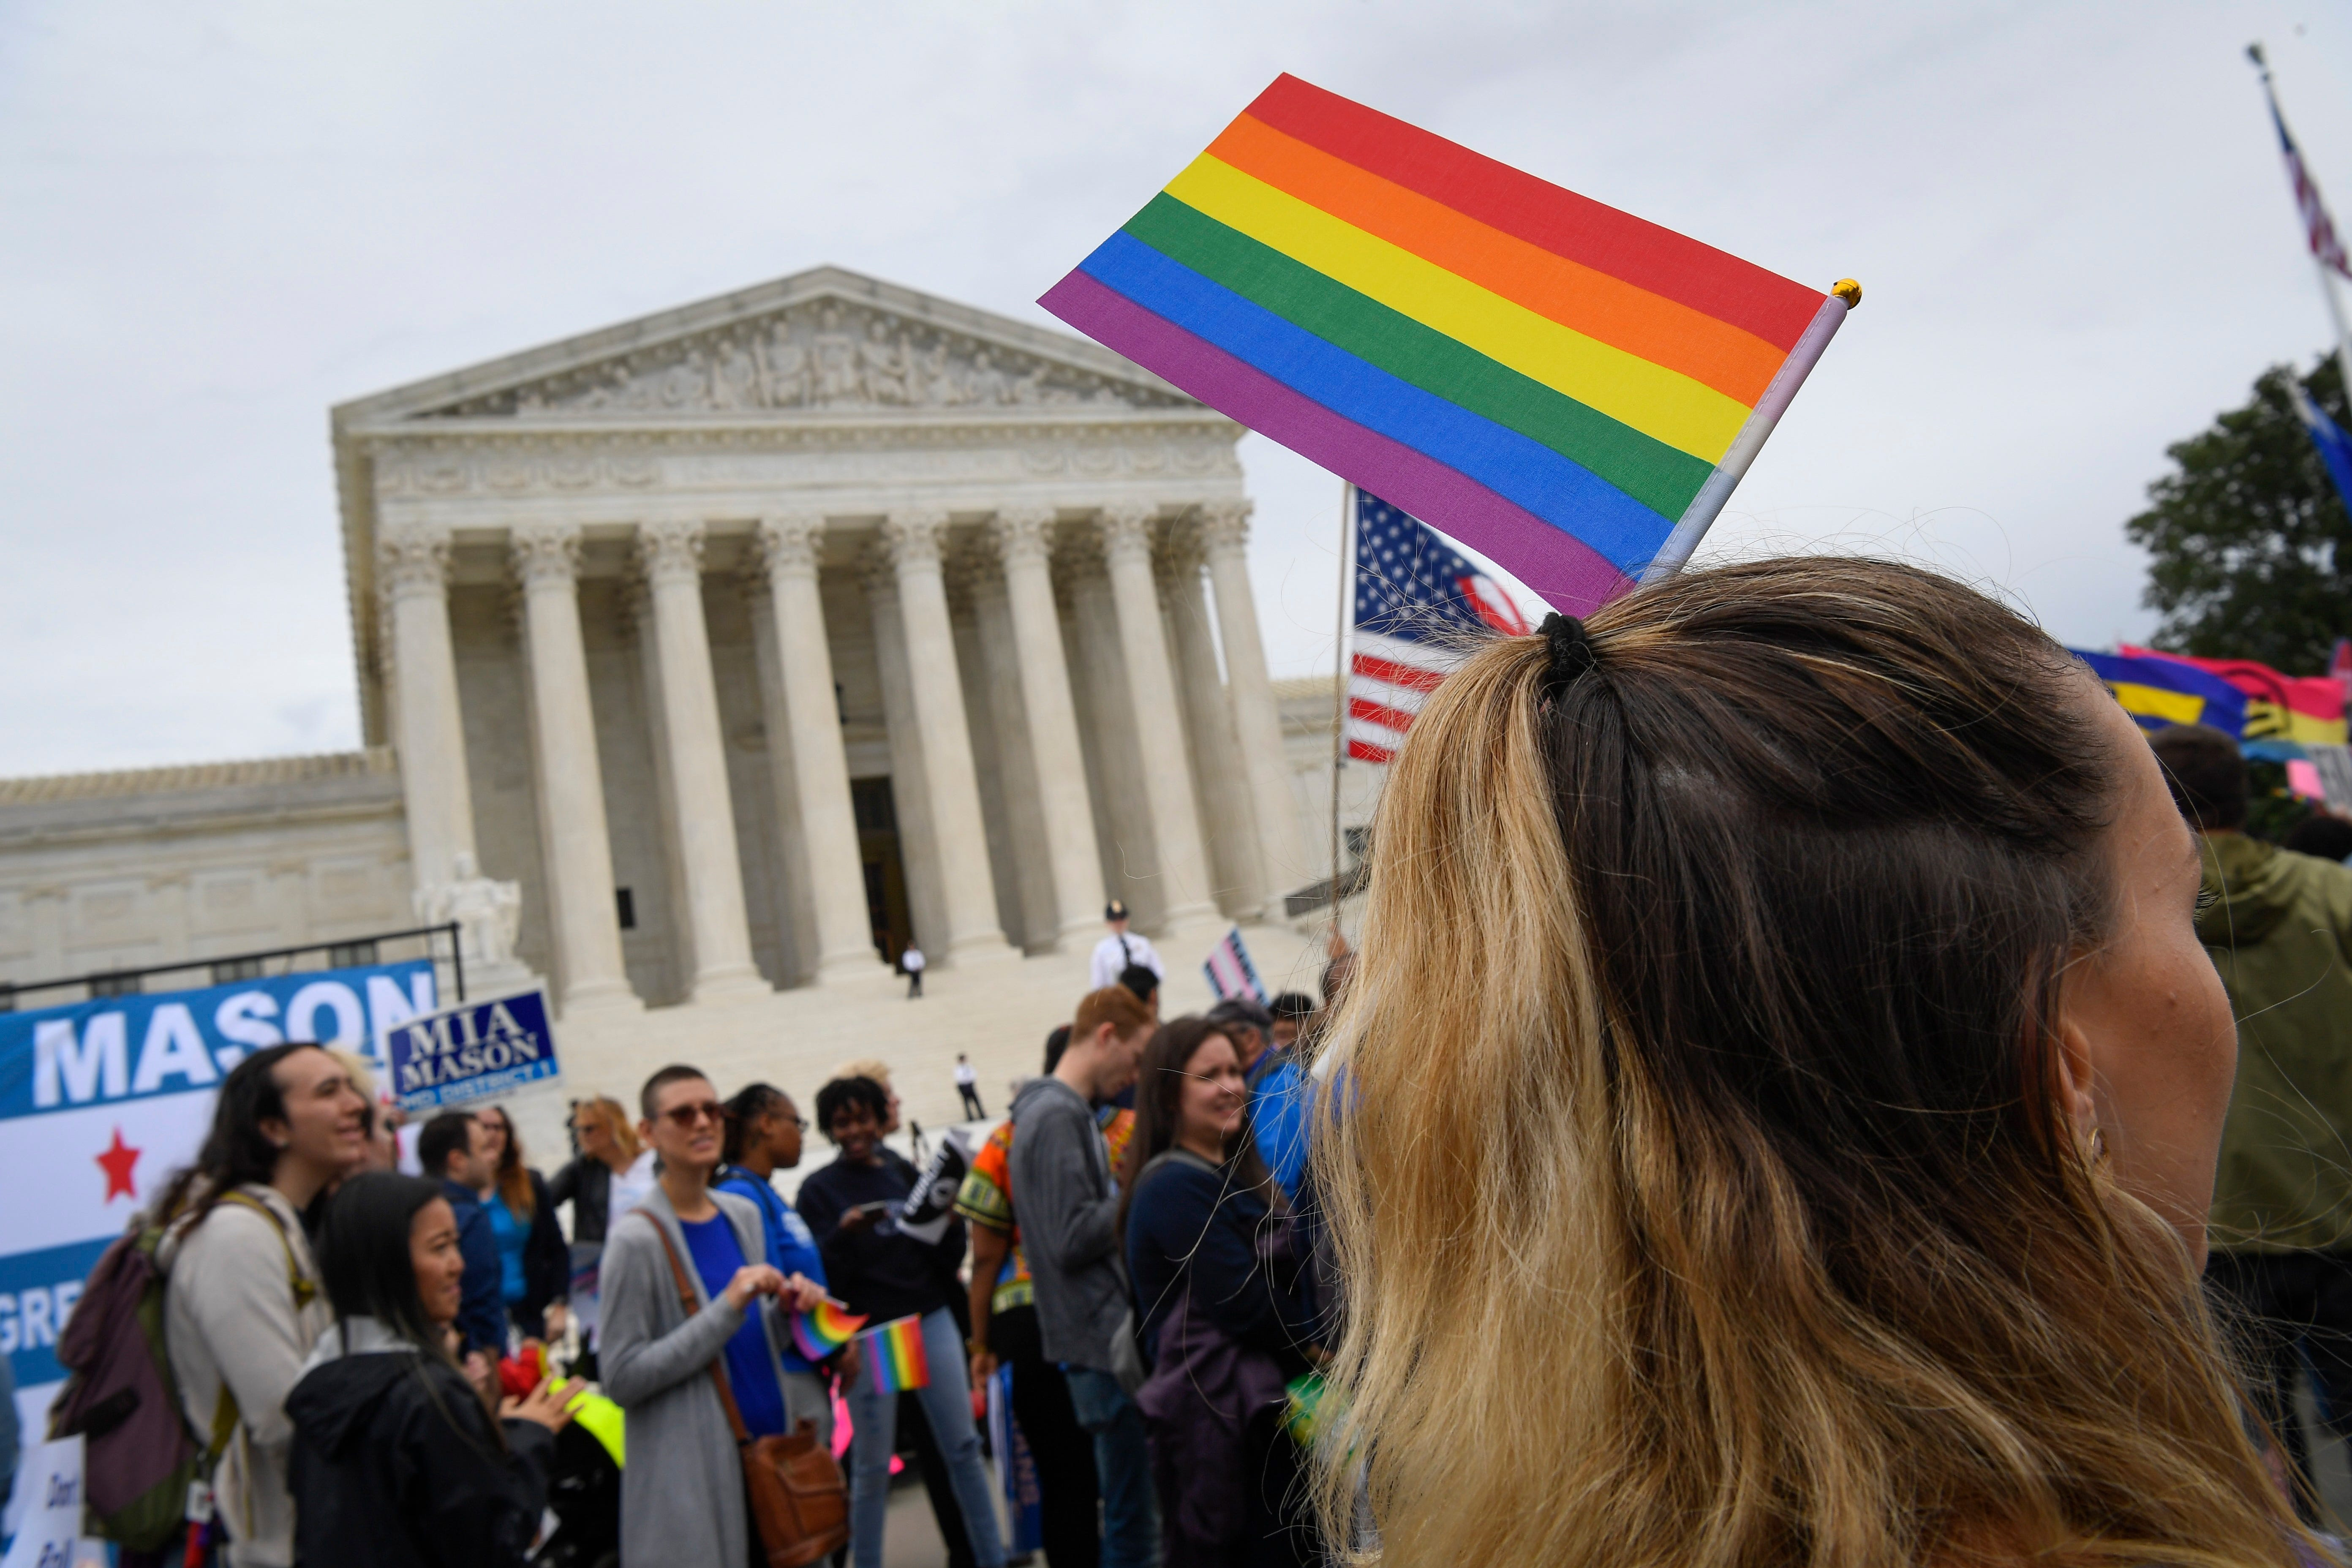 What does it mean for LGBT rights and where?